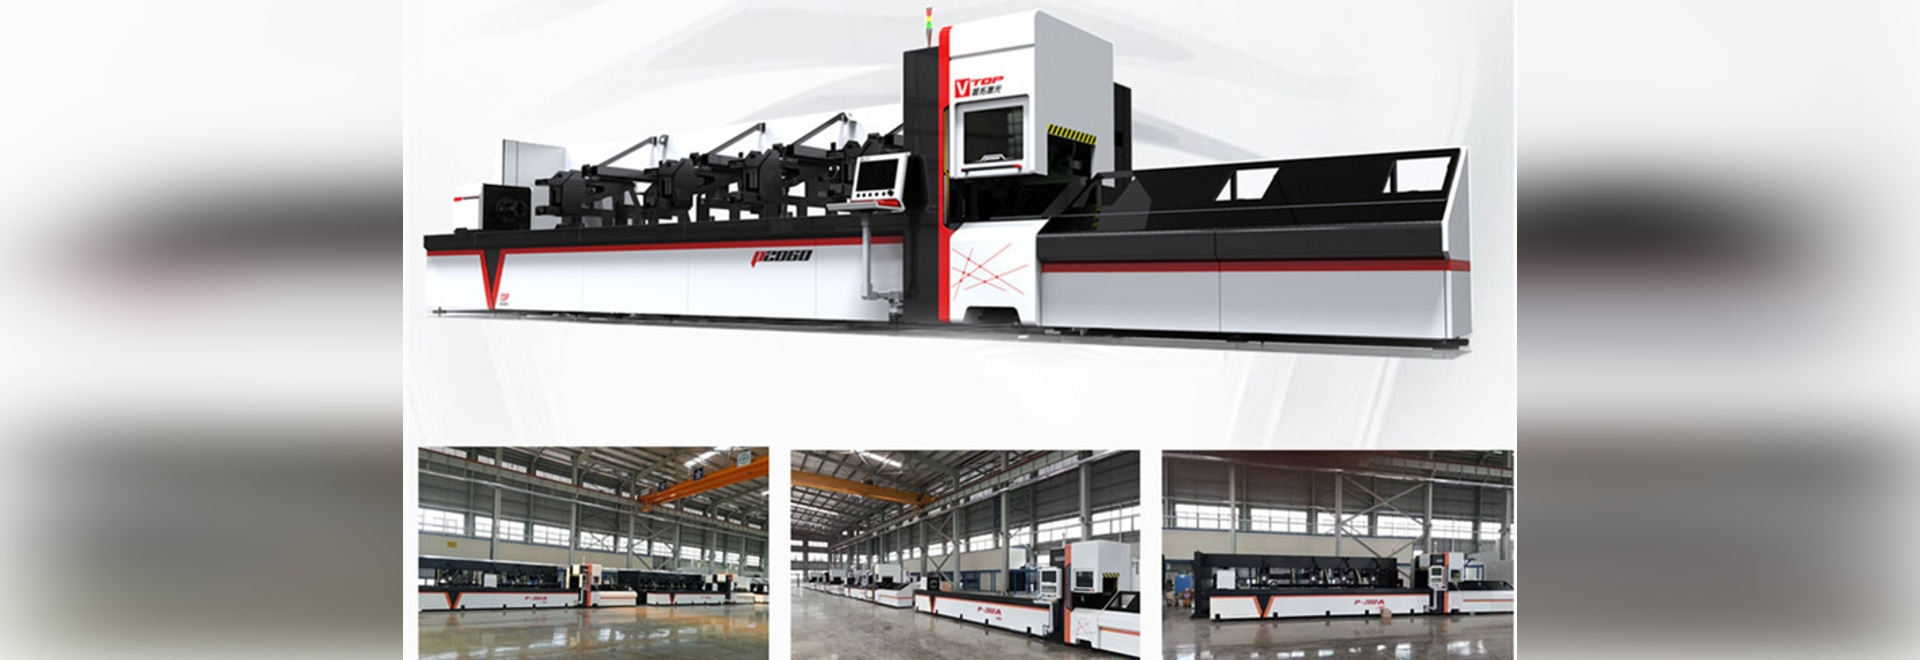 700w 1000w 2000w 3000w Cnc Fiber Laser Pipe Cutting Machine pour tube rond / tube carré / tube rectangulaire